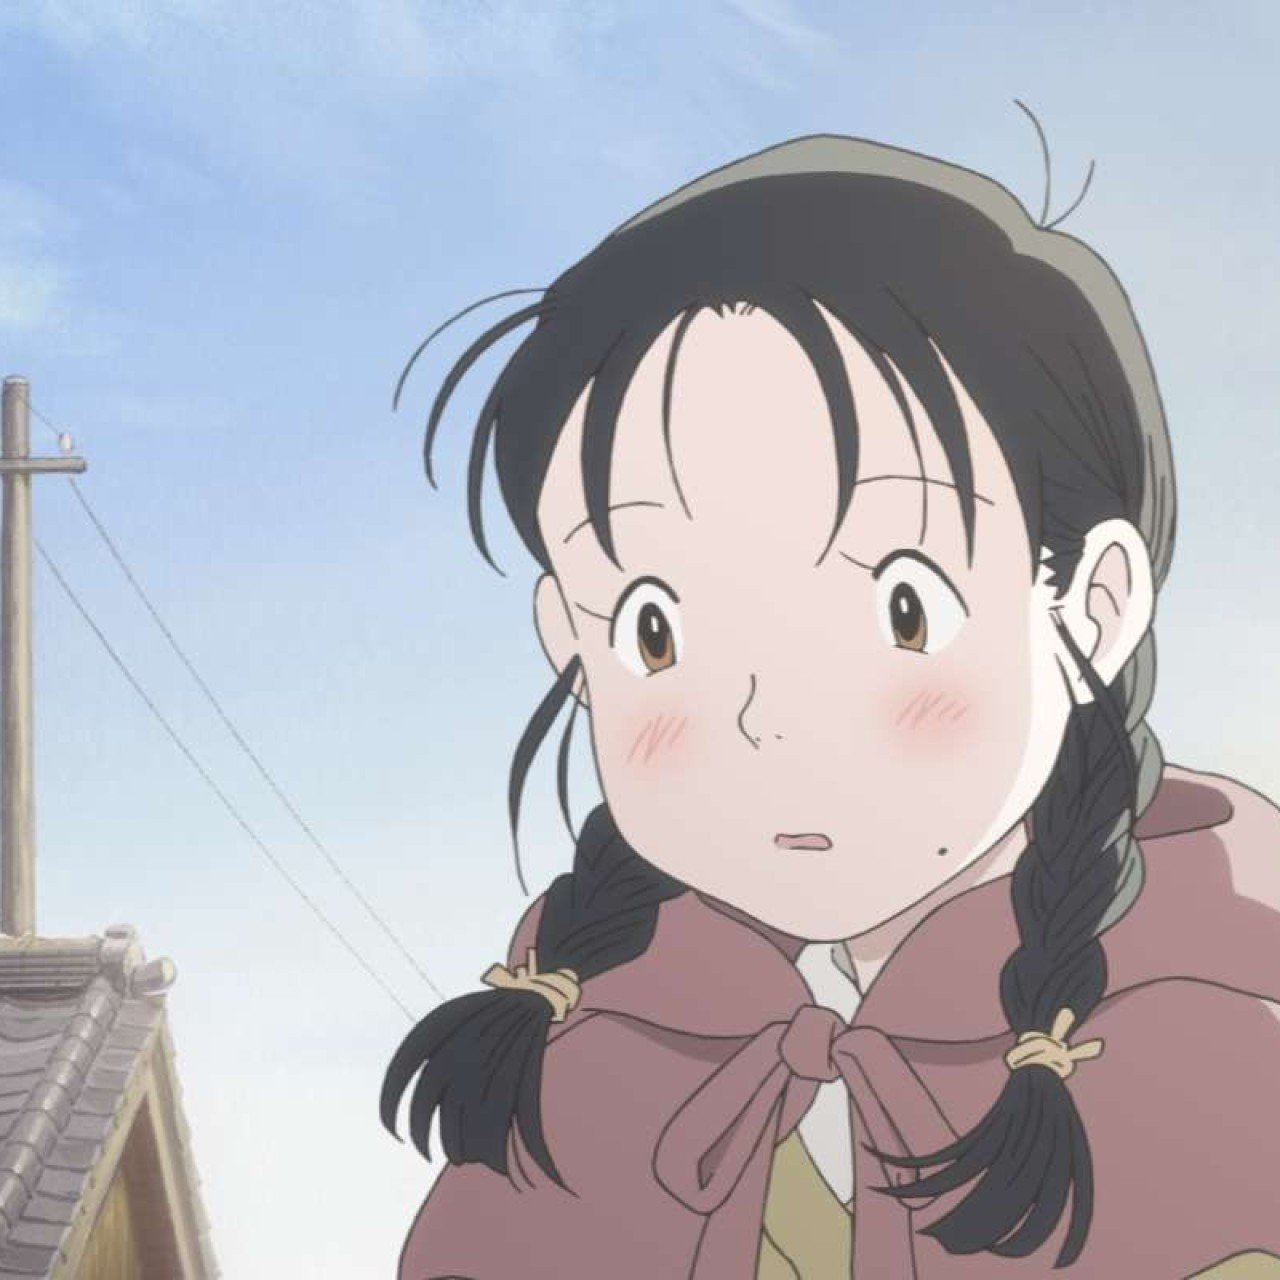 There S Simply Not Enough Story To Tell In In This Corner Of The World Review Yp South China Morning Post